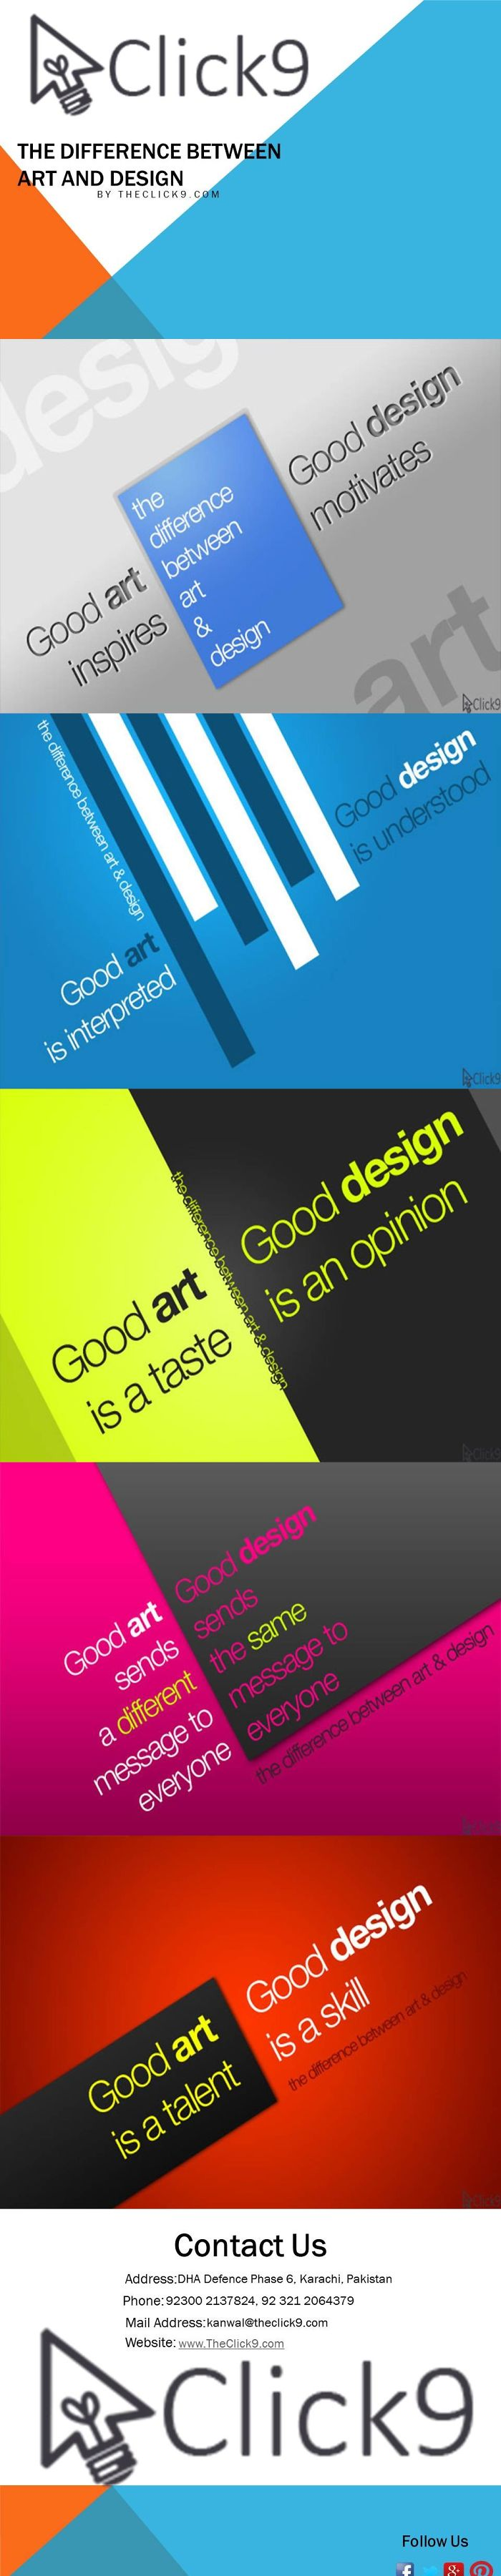 The Difference Between Art And Design.